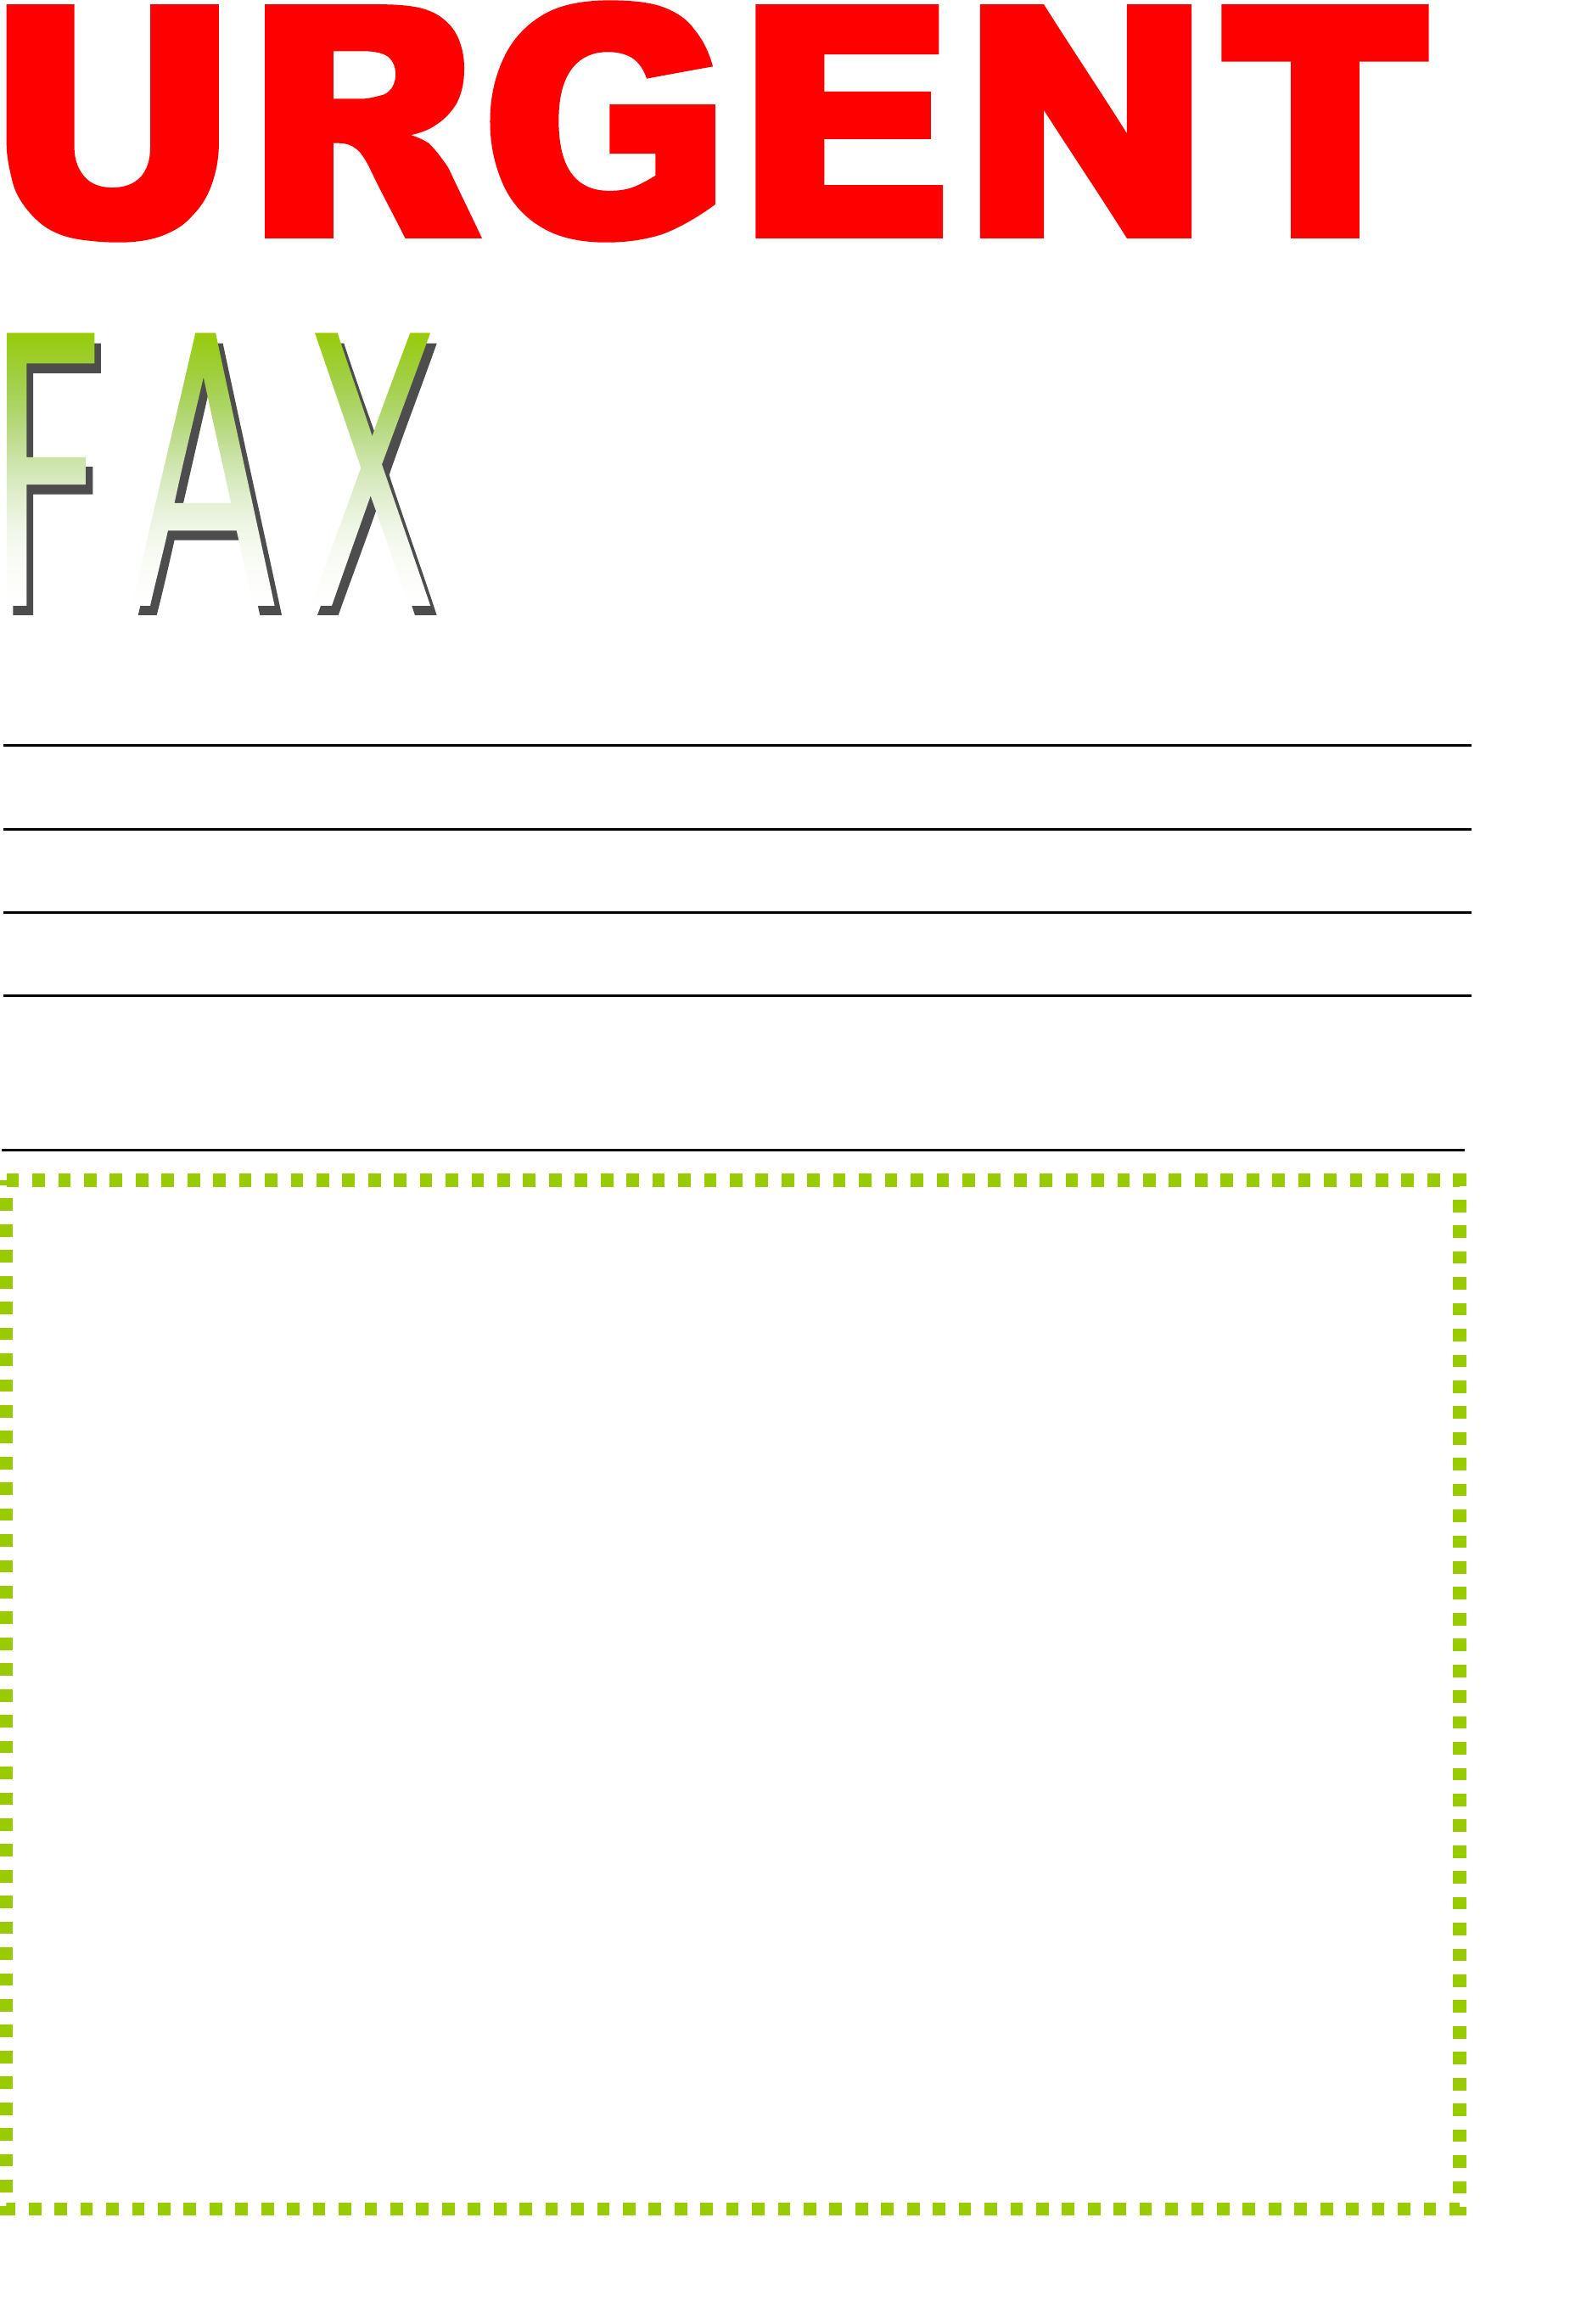 Sample Urgent Fax Cover Sheet Free Download